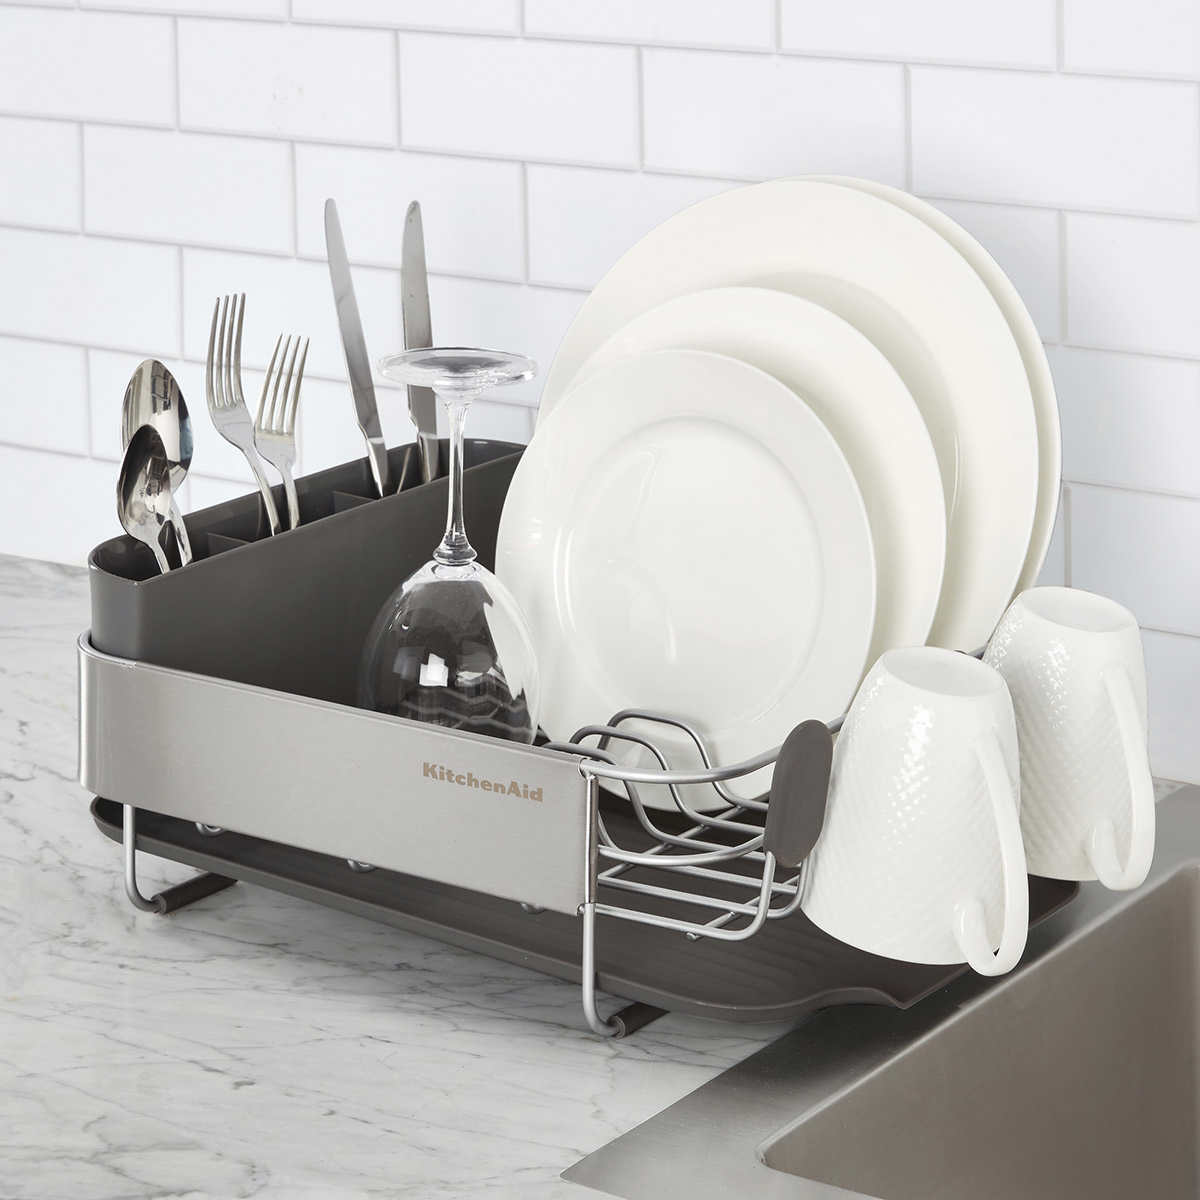 Kitchenaid Stainless Steel Compact Dish Drying Rack